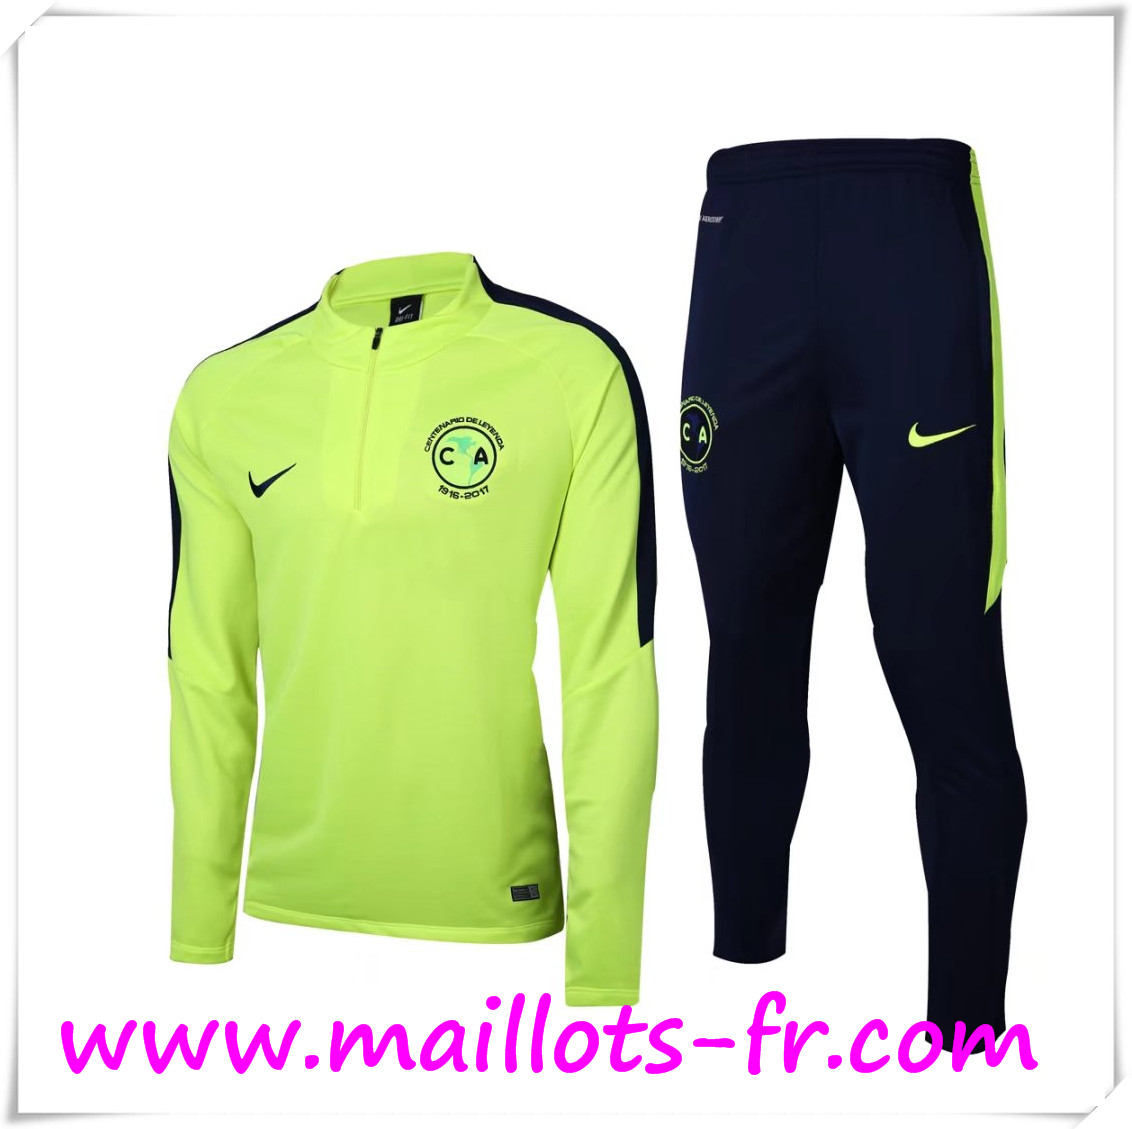 maillots-fr Survetement de Foot Club América Vert 2016 2017 Ensemble